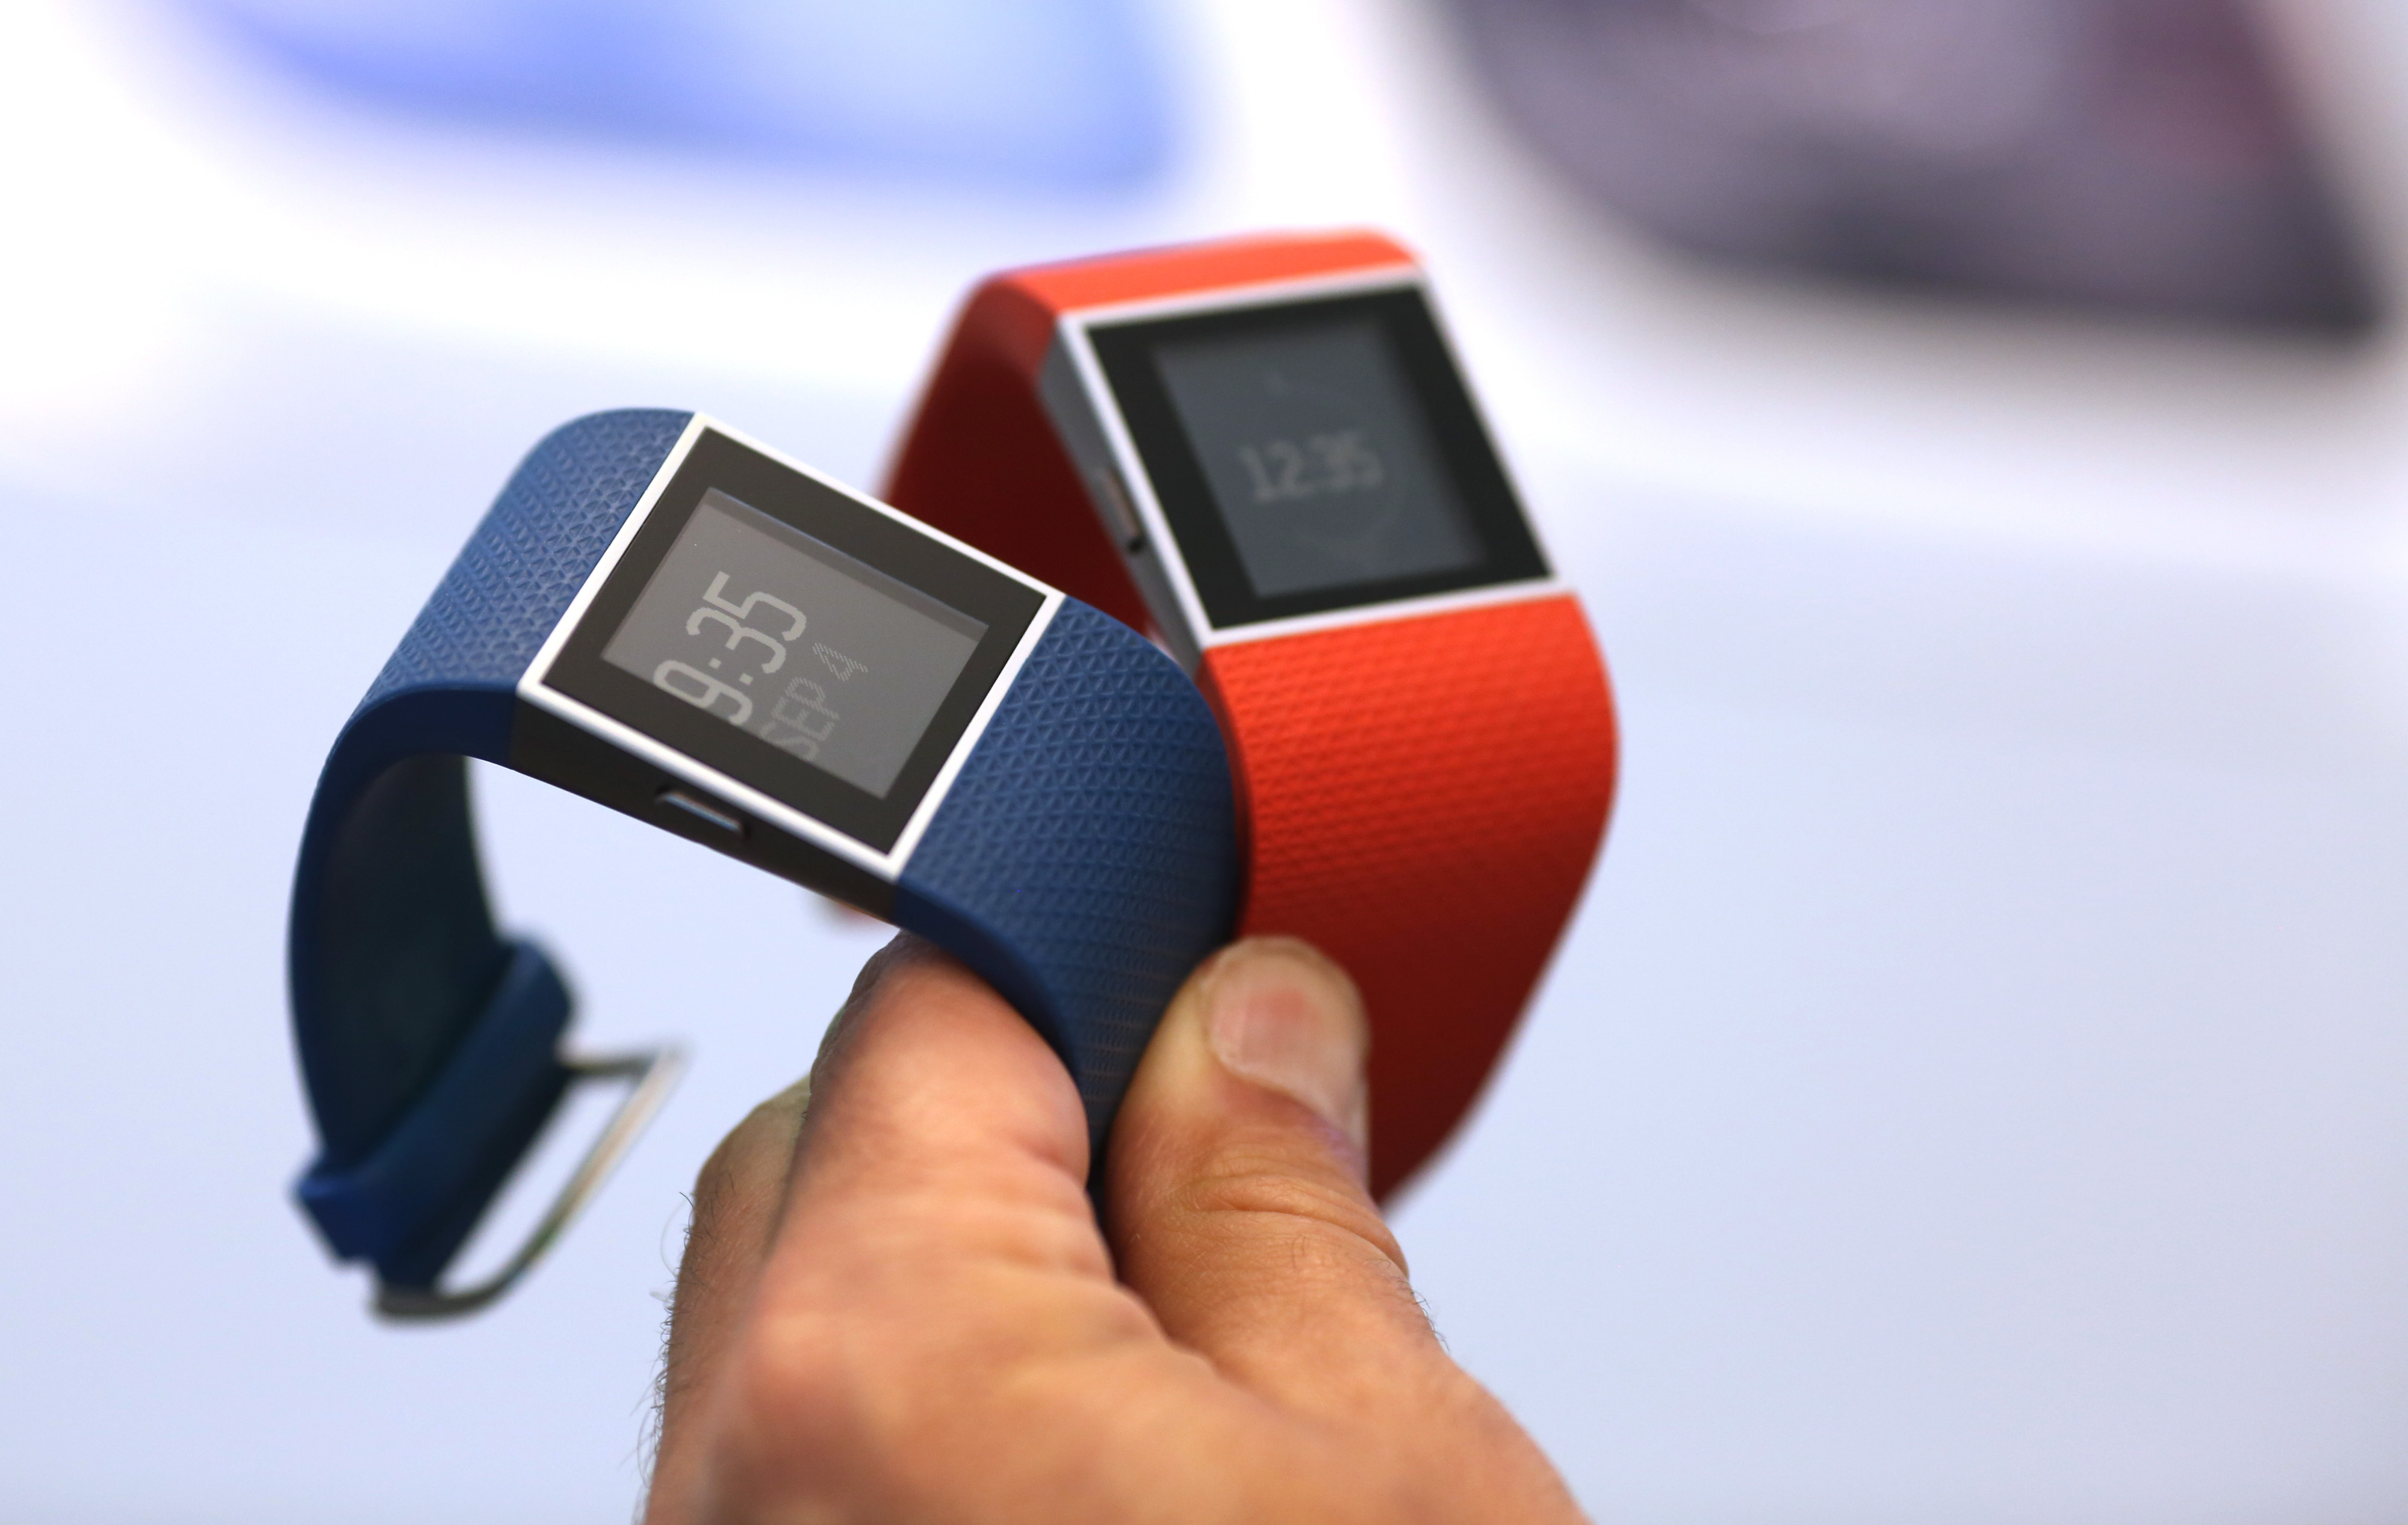 An employee holds Fitbit Inc. Surge smartwatches during the IFA International Consumer Electronics Show in Berlin, Germany, on Friday, Sept. 4, 2015.